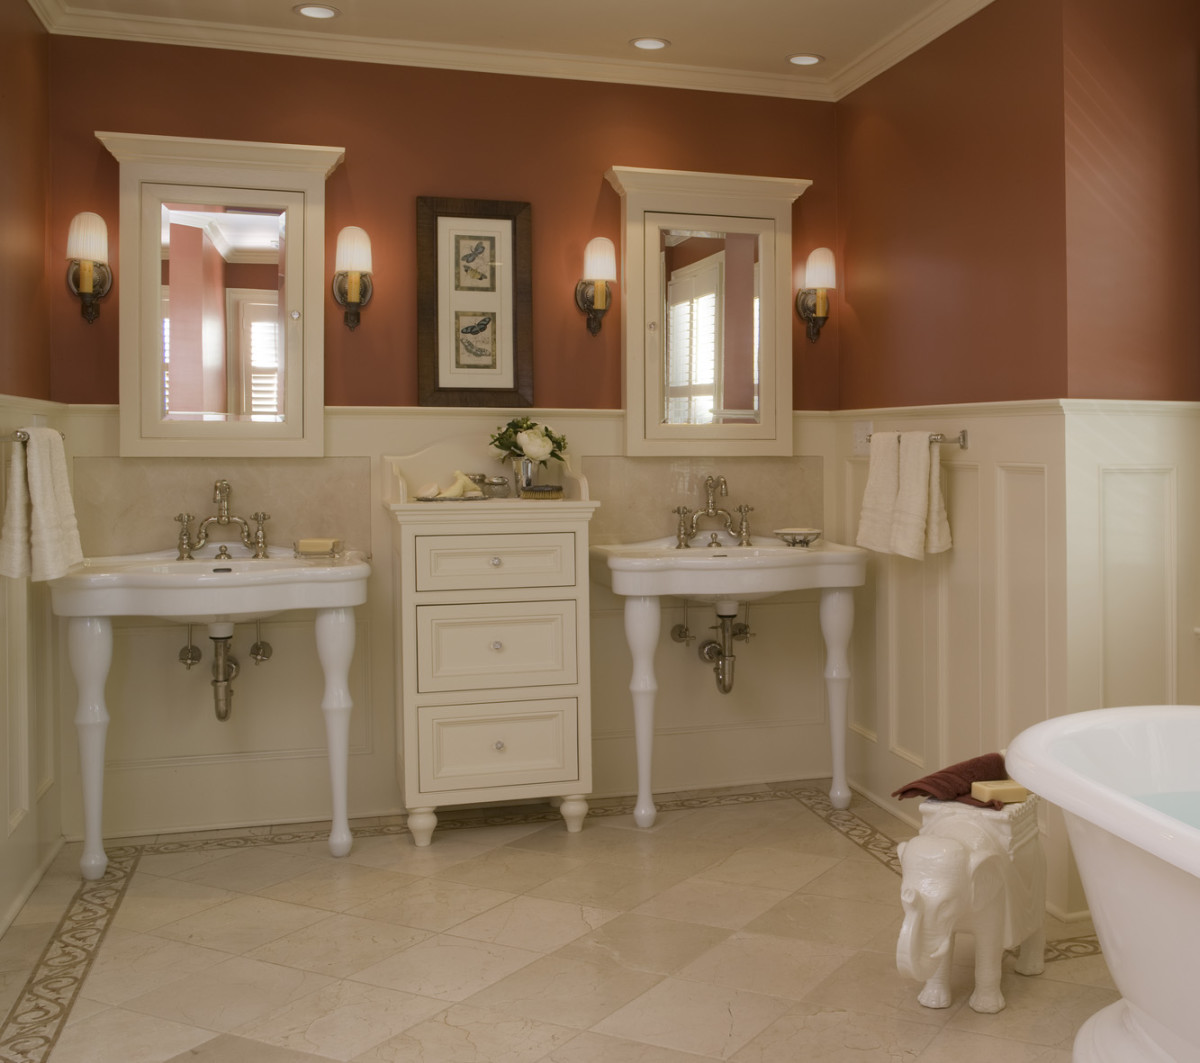 Bathrooms for the craftsman era design for the arts - Arts and crafts style bathroom design ...